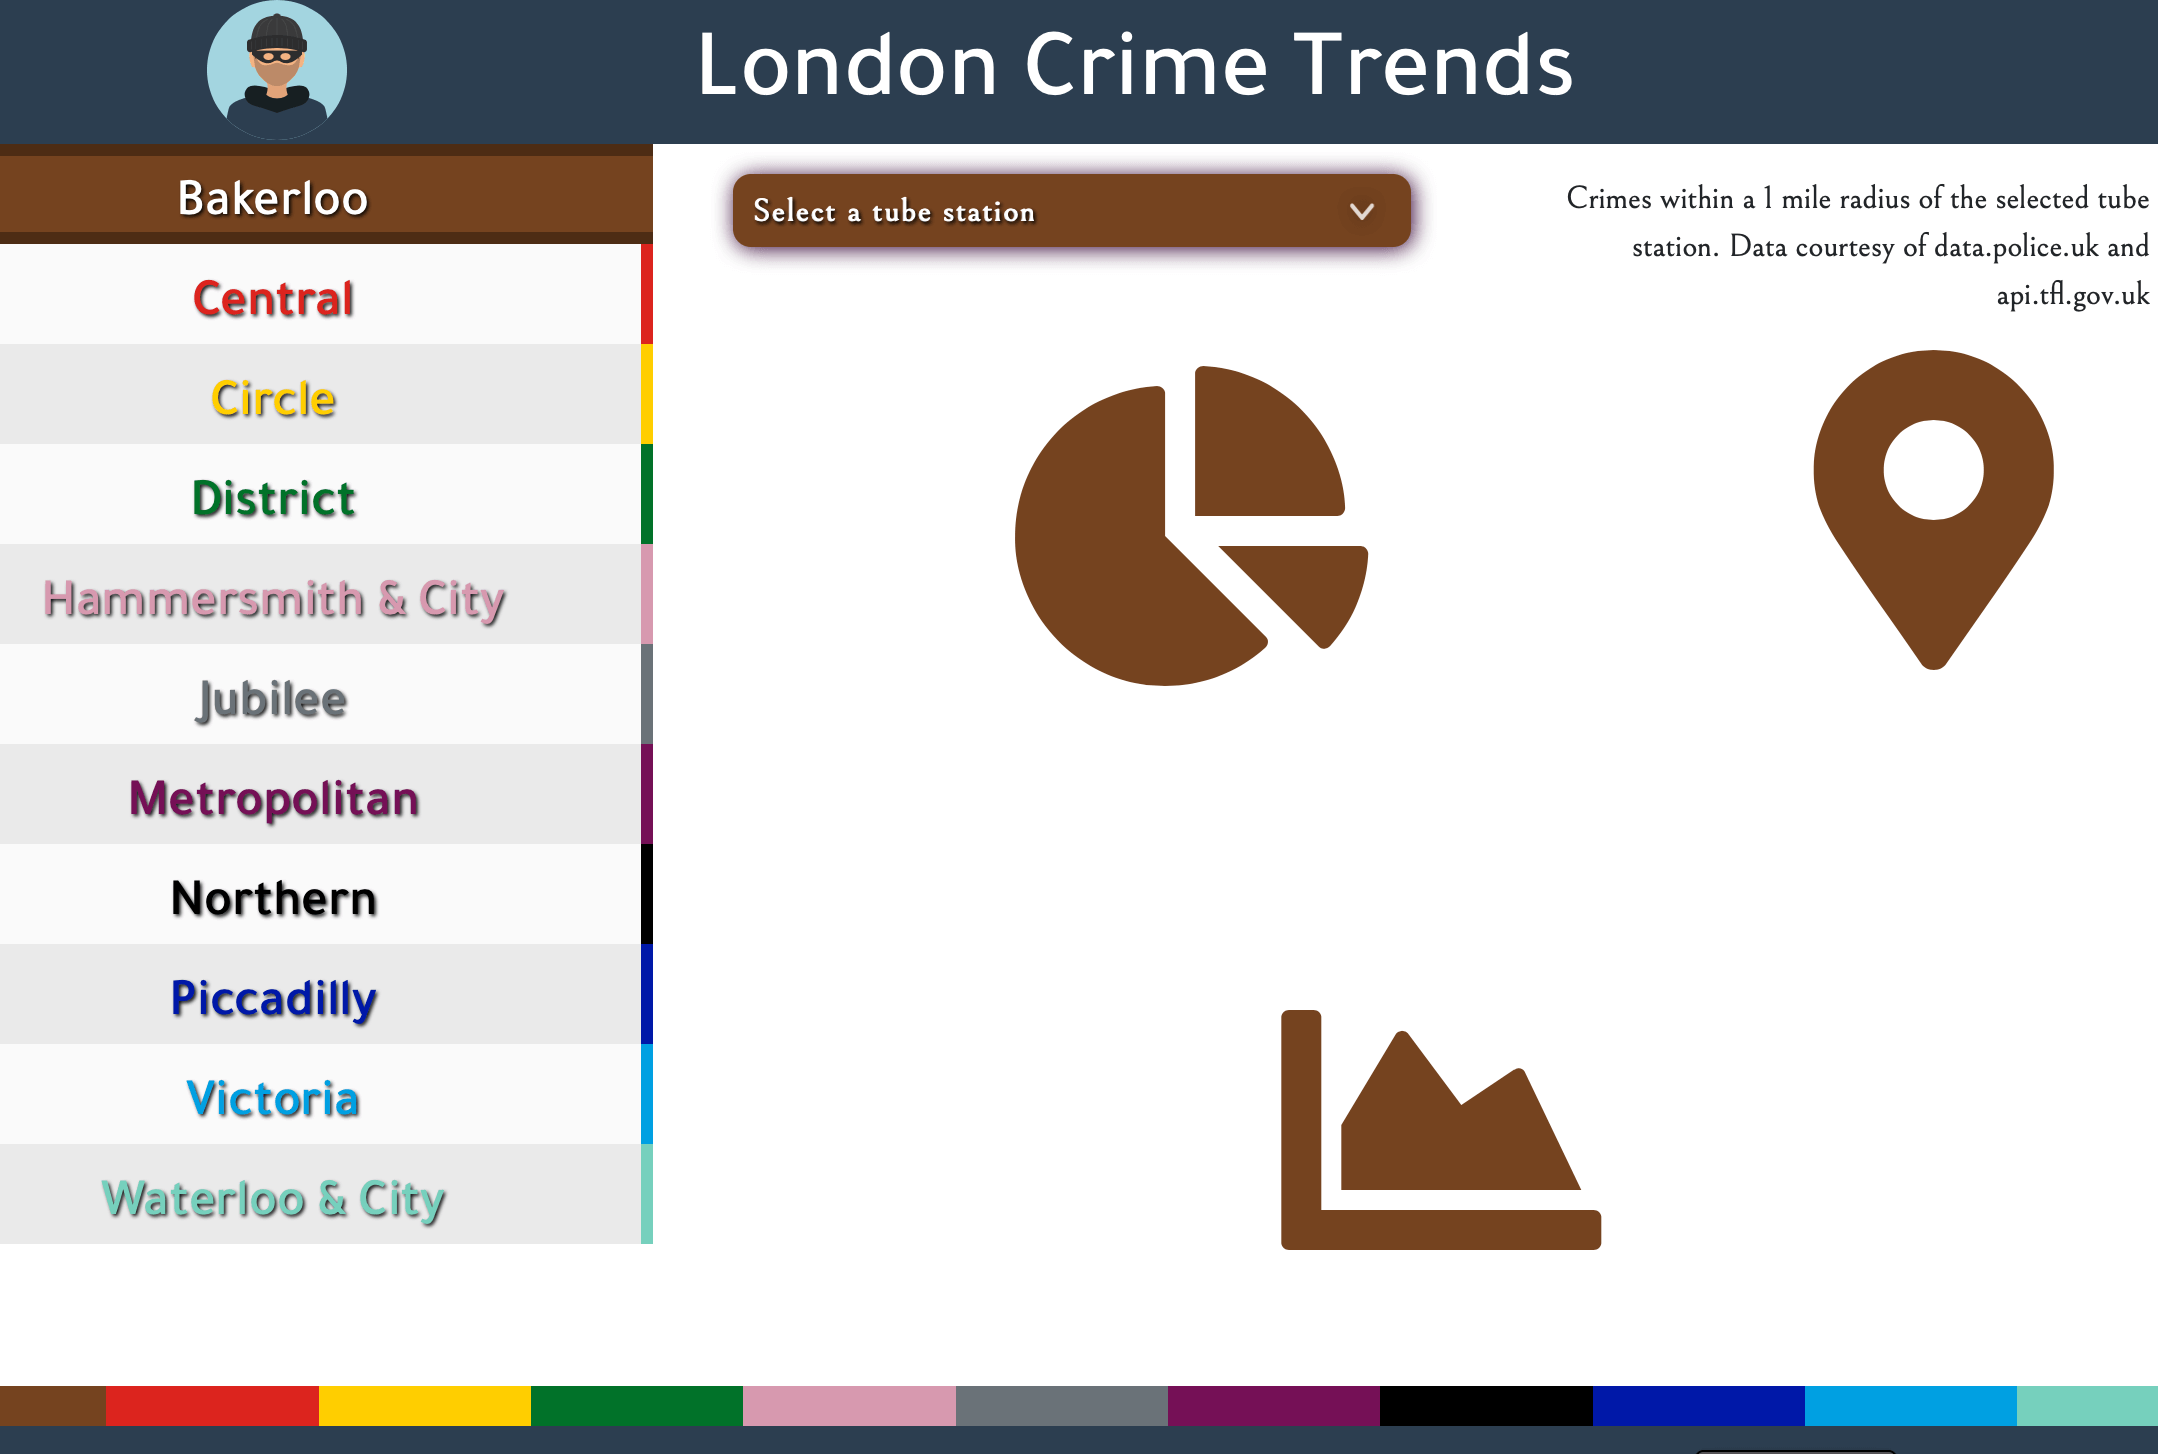 London Crime Trends